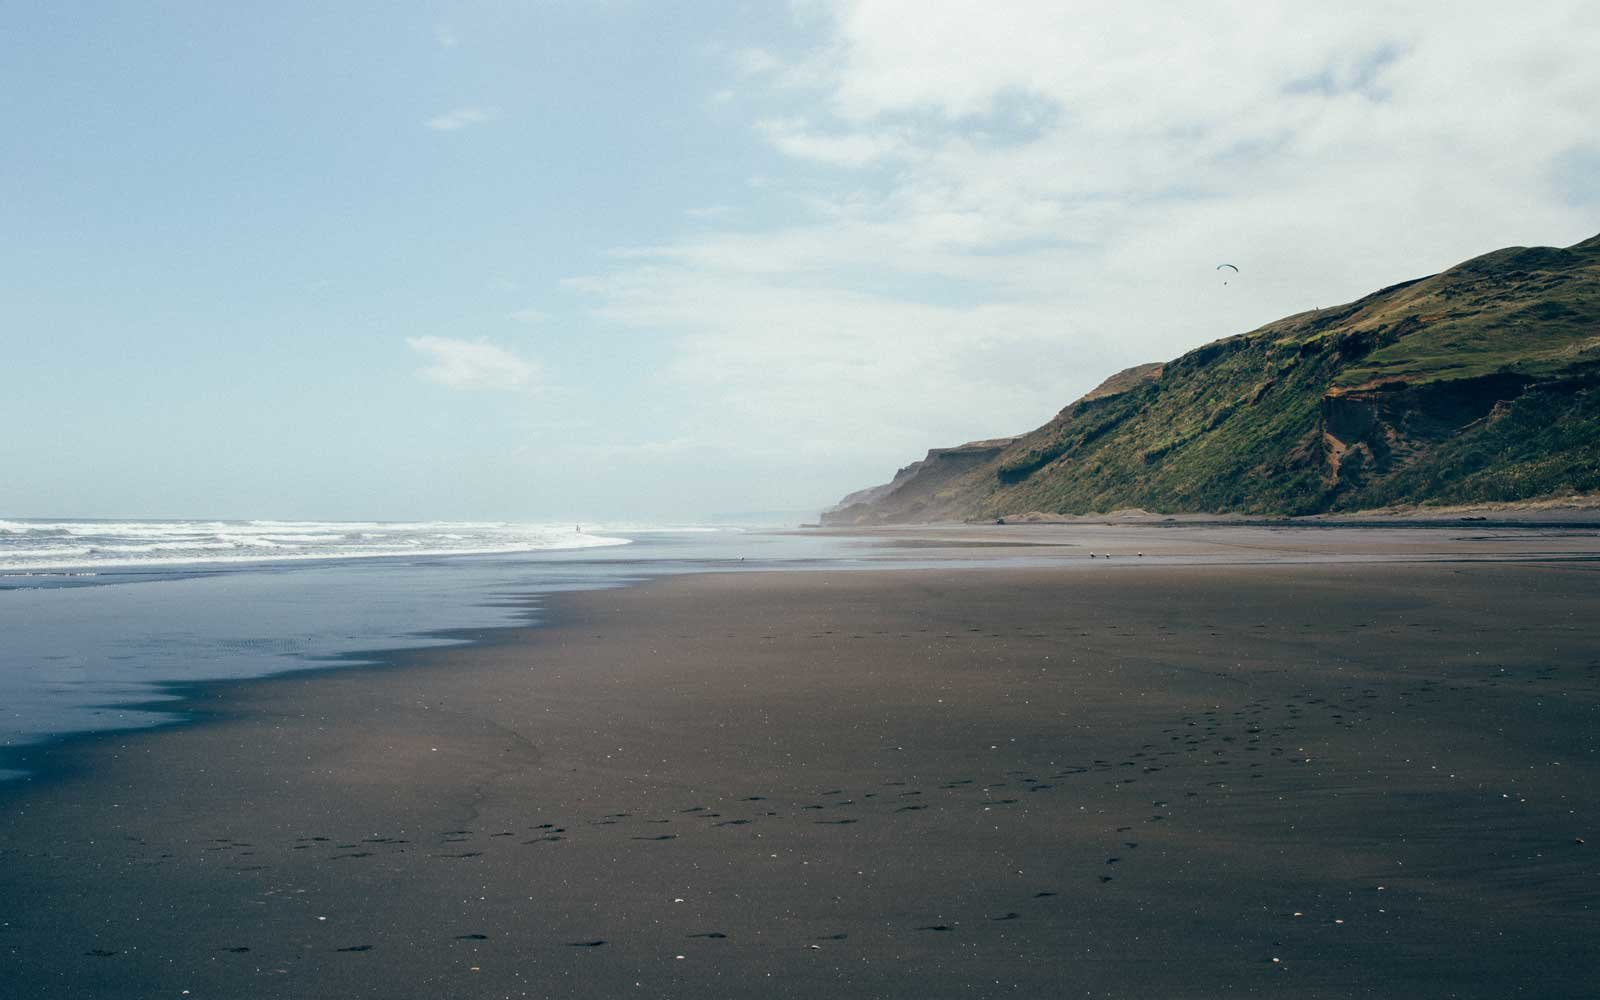 A view on the empty black sand Karioitahi Beach close to Auckland, New Zealand.